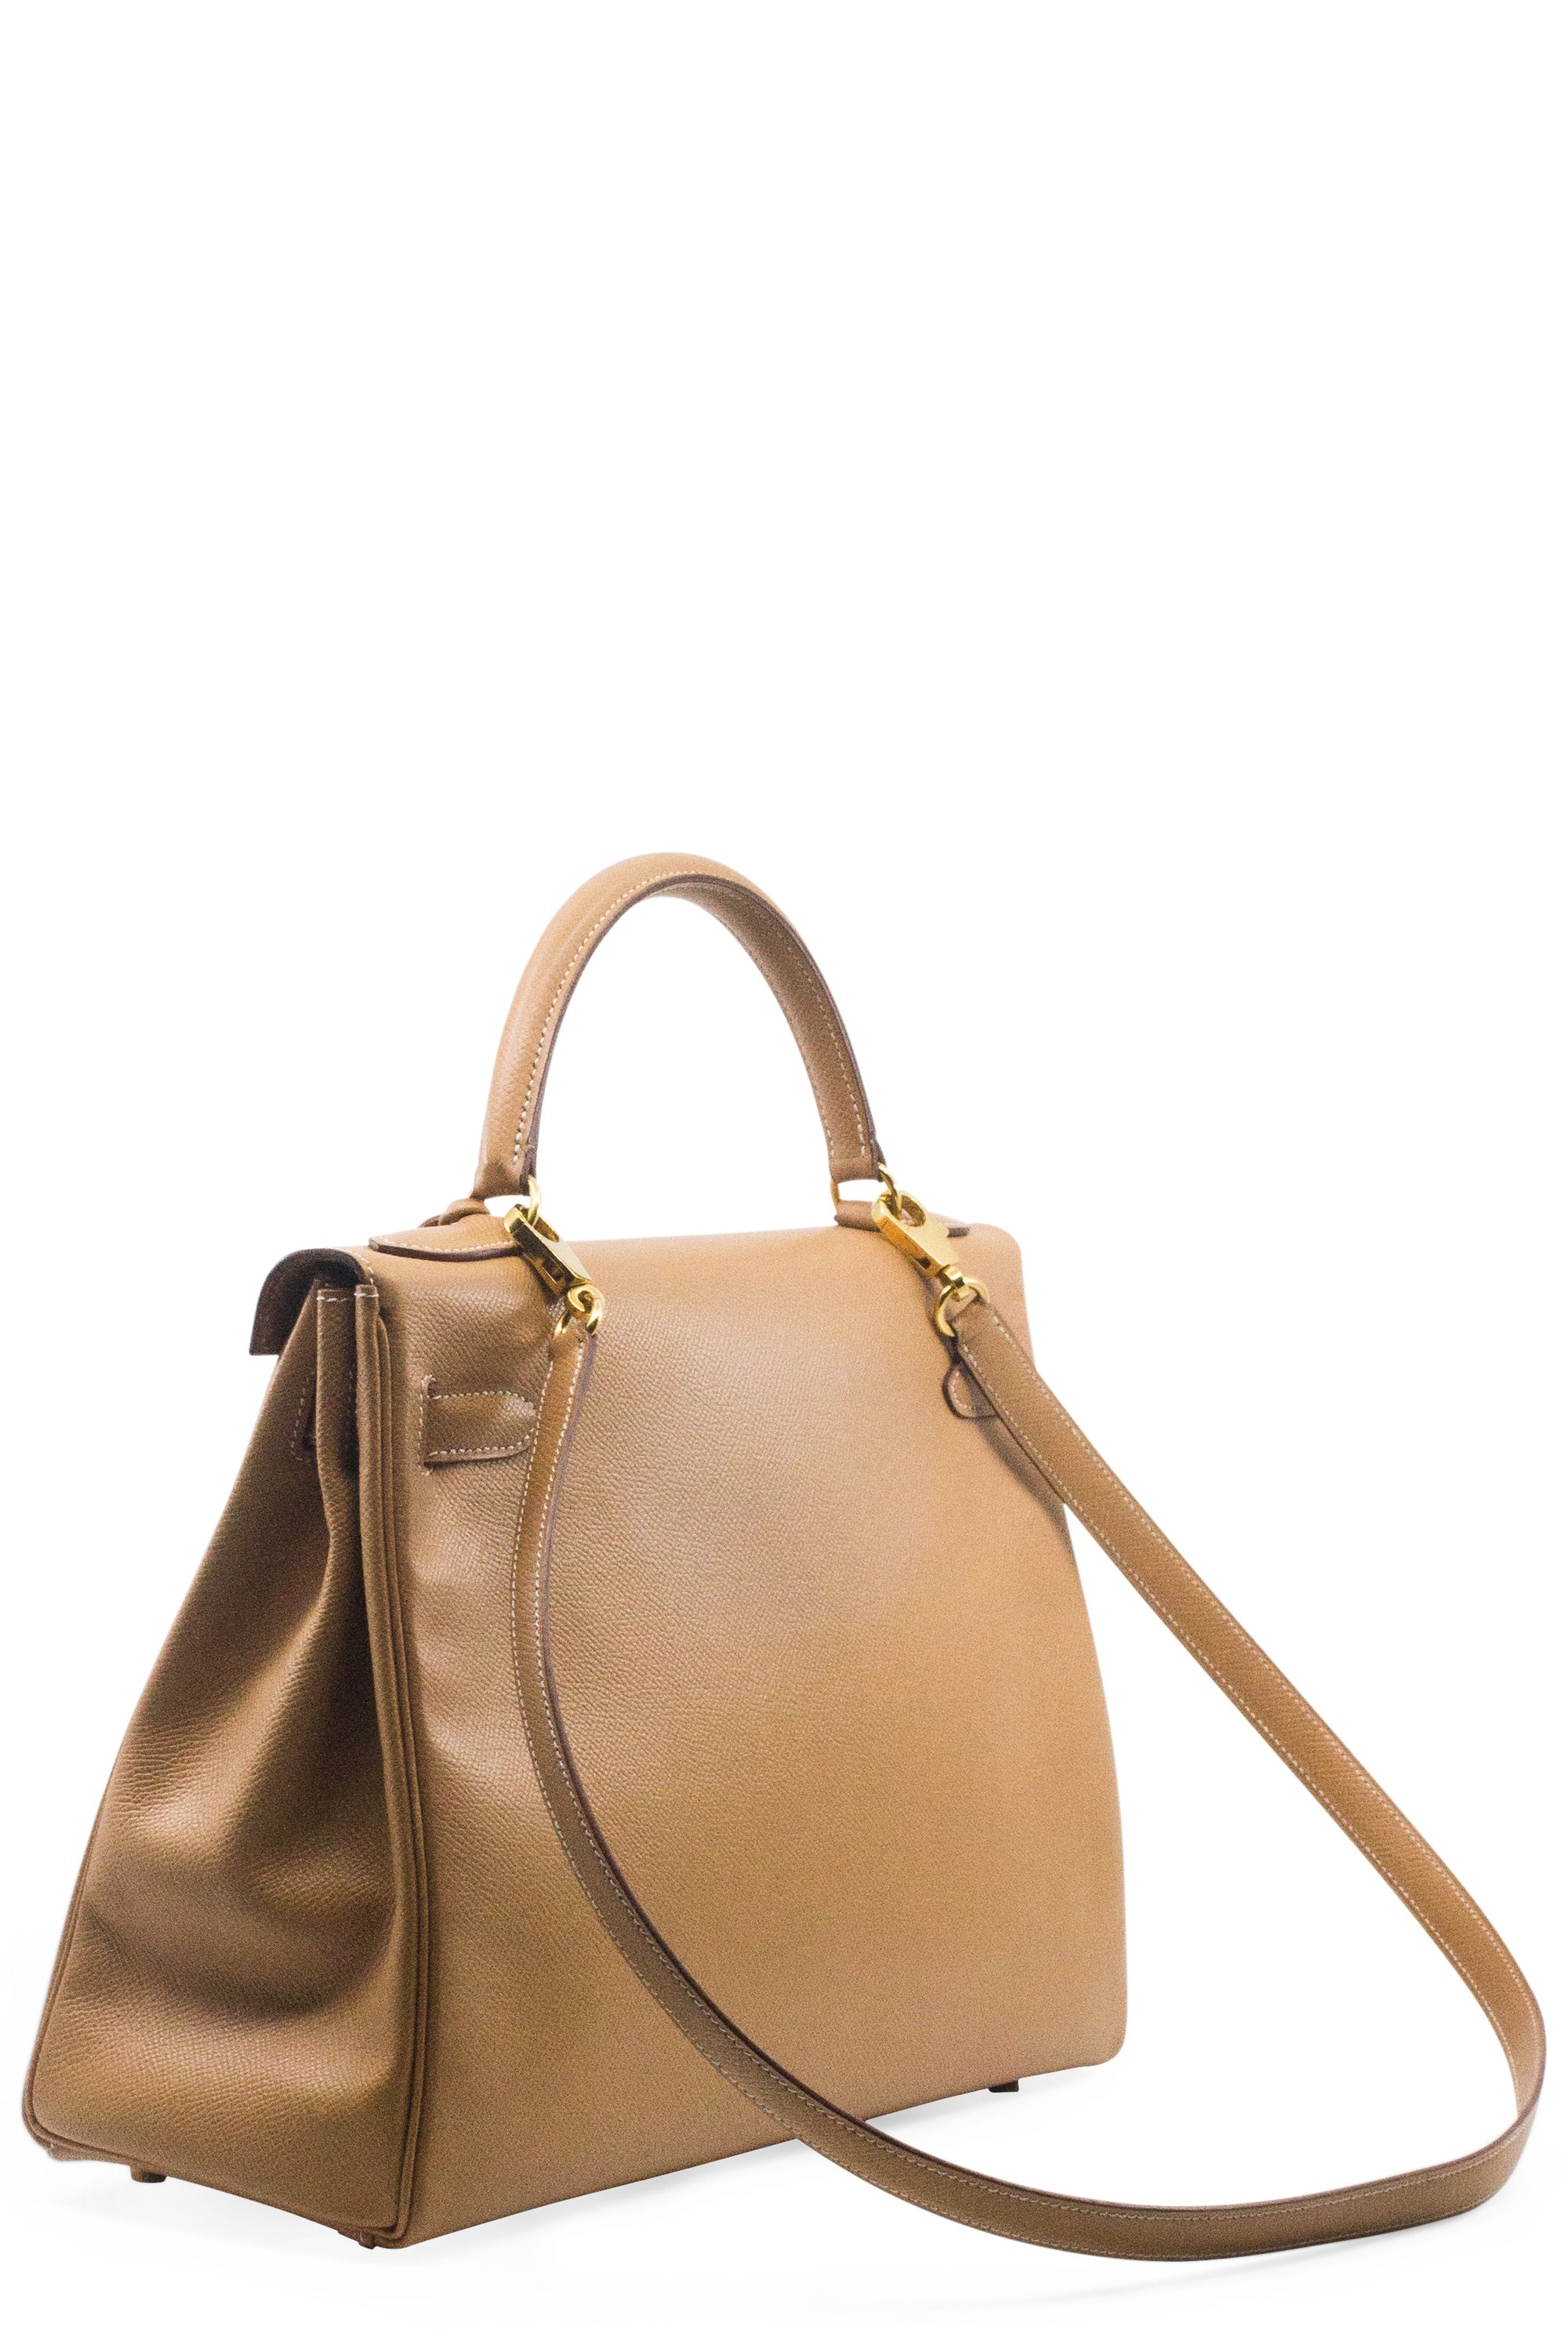 HERMÈS Kelly Retourené 32 Epsom Leather Beige